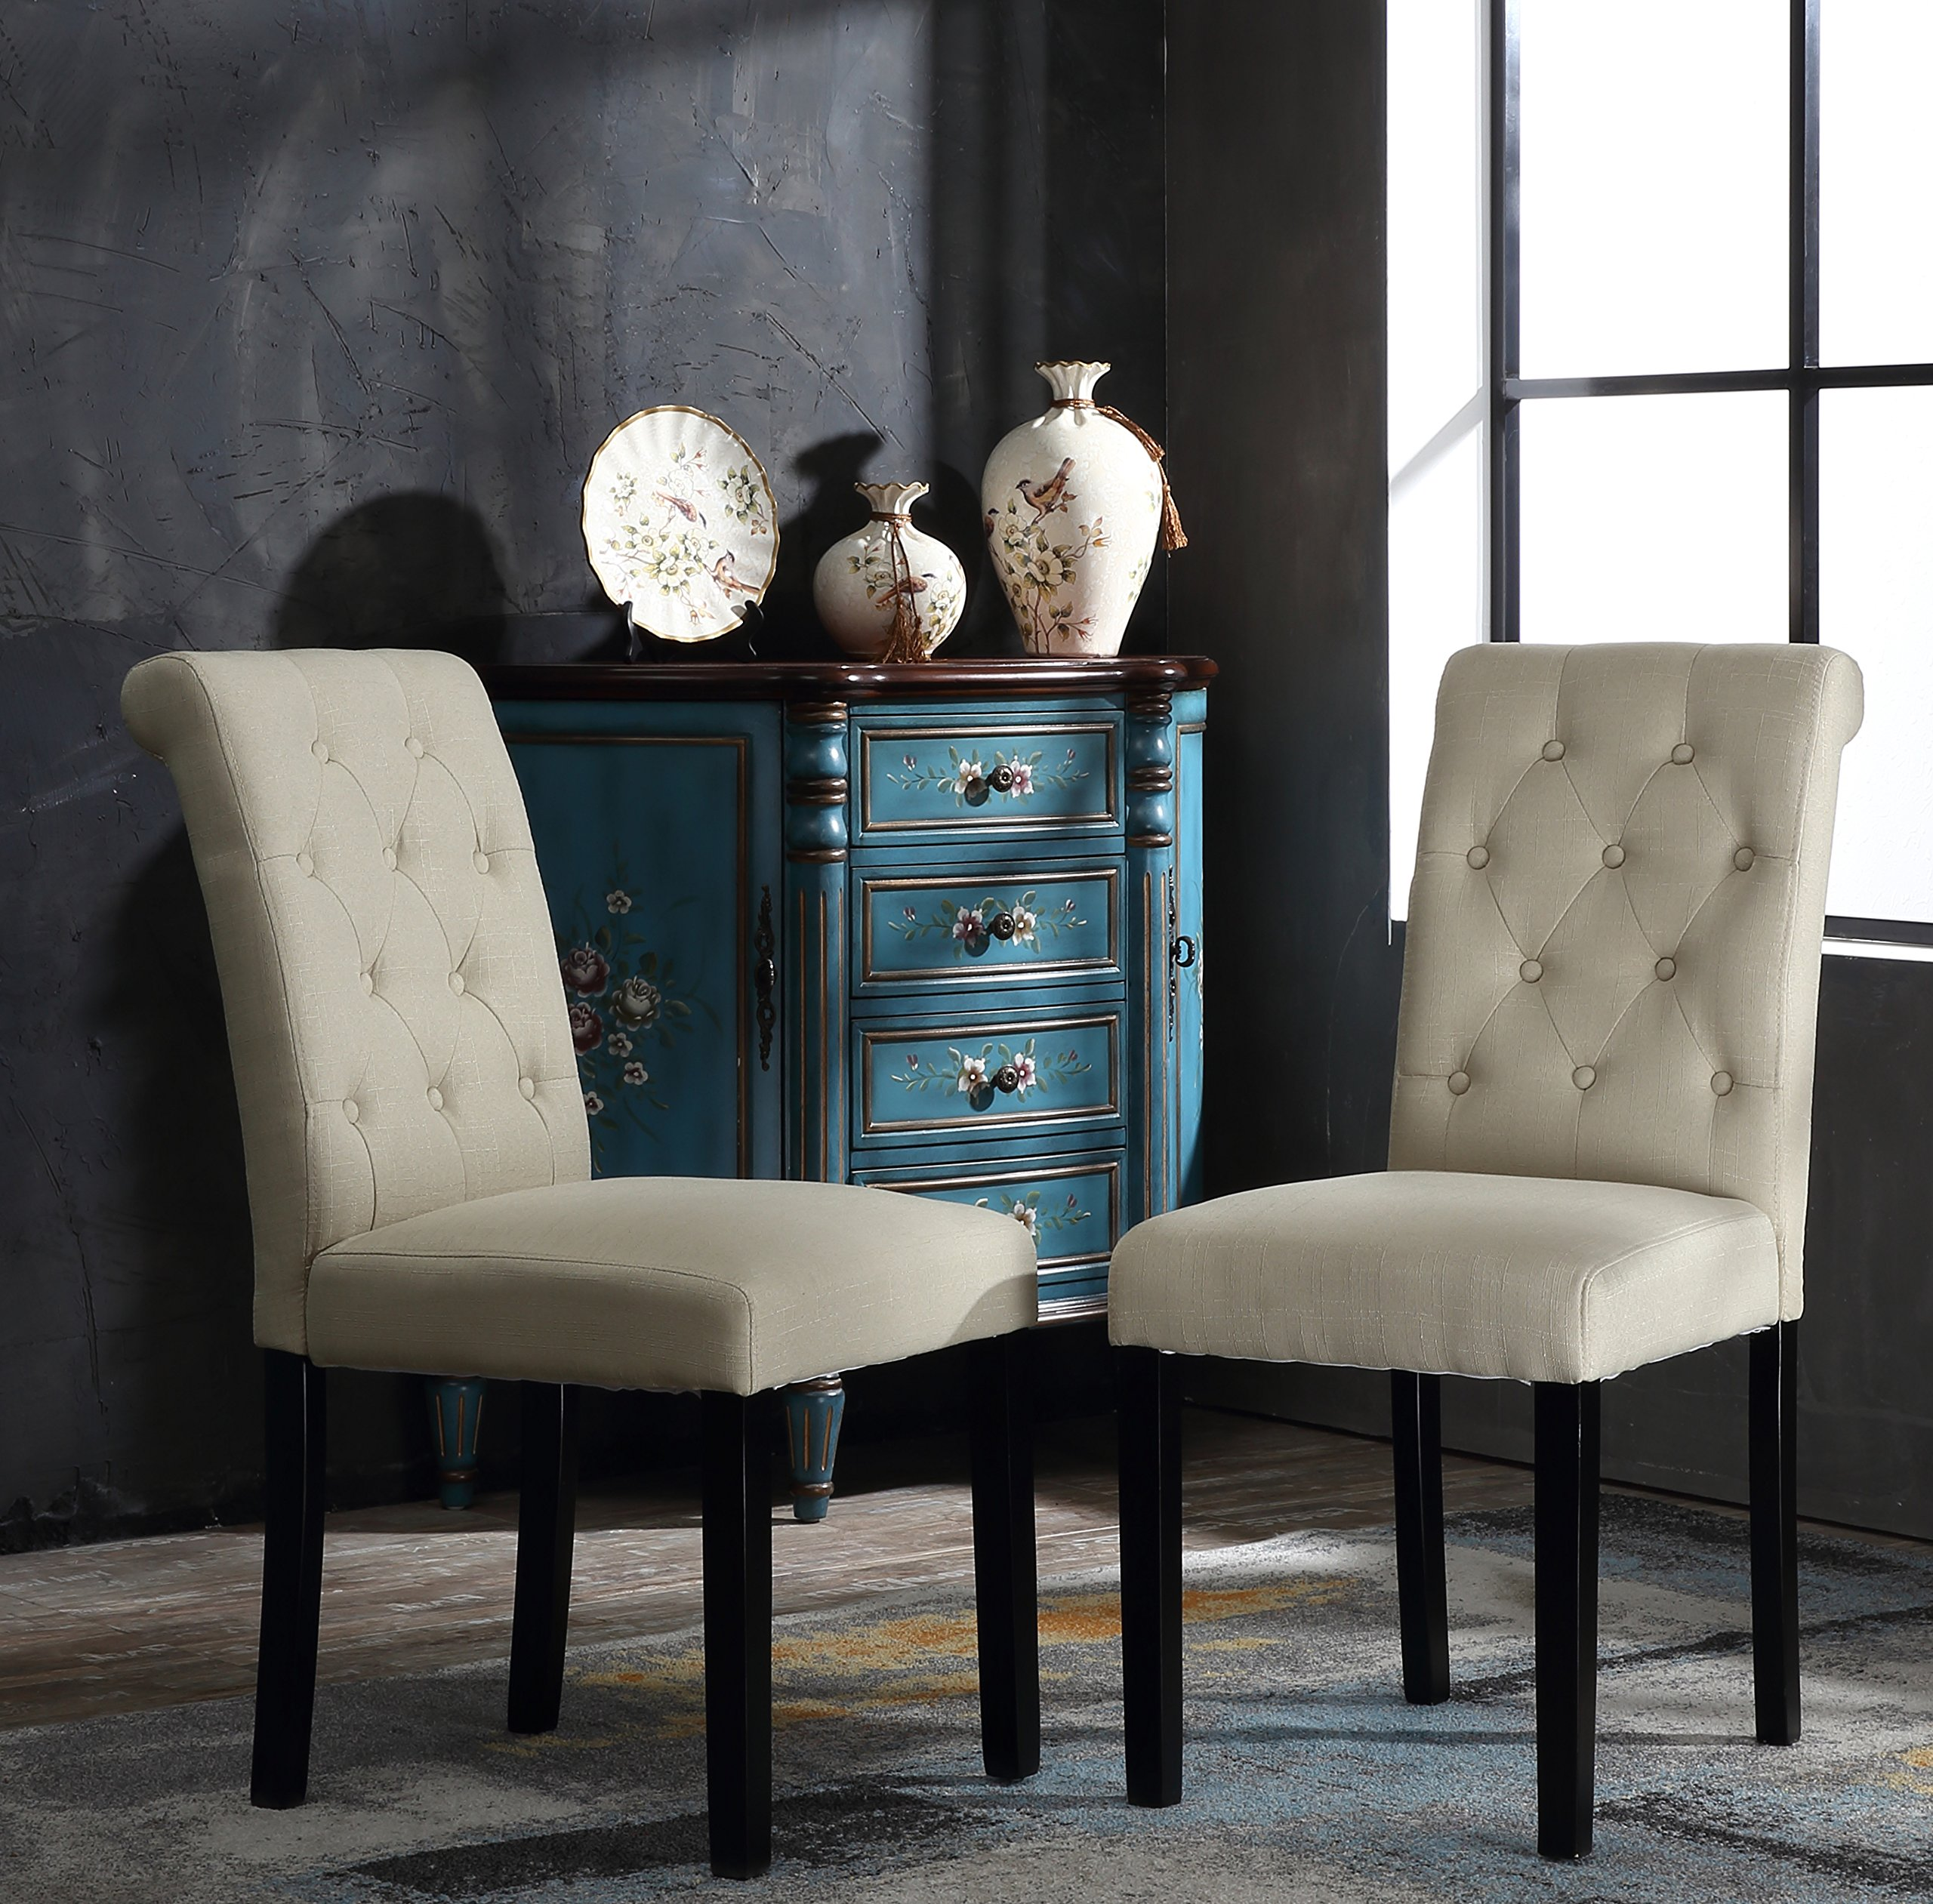 YEEFY Fabric Habit Solid Wood Tufted Parsons Dining Chair ...